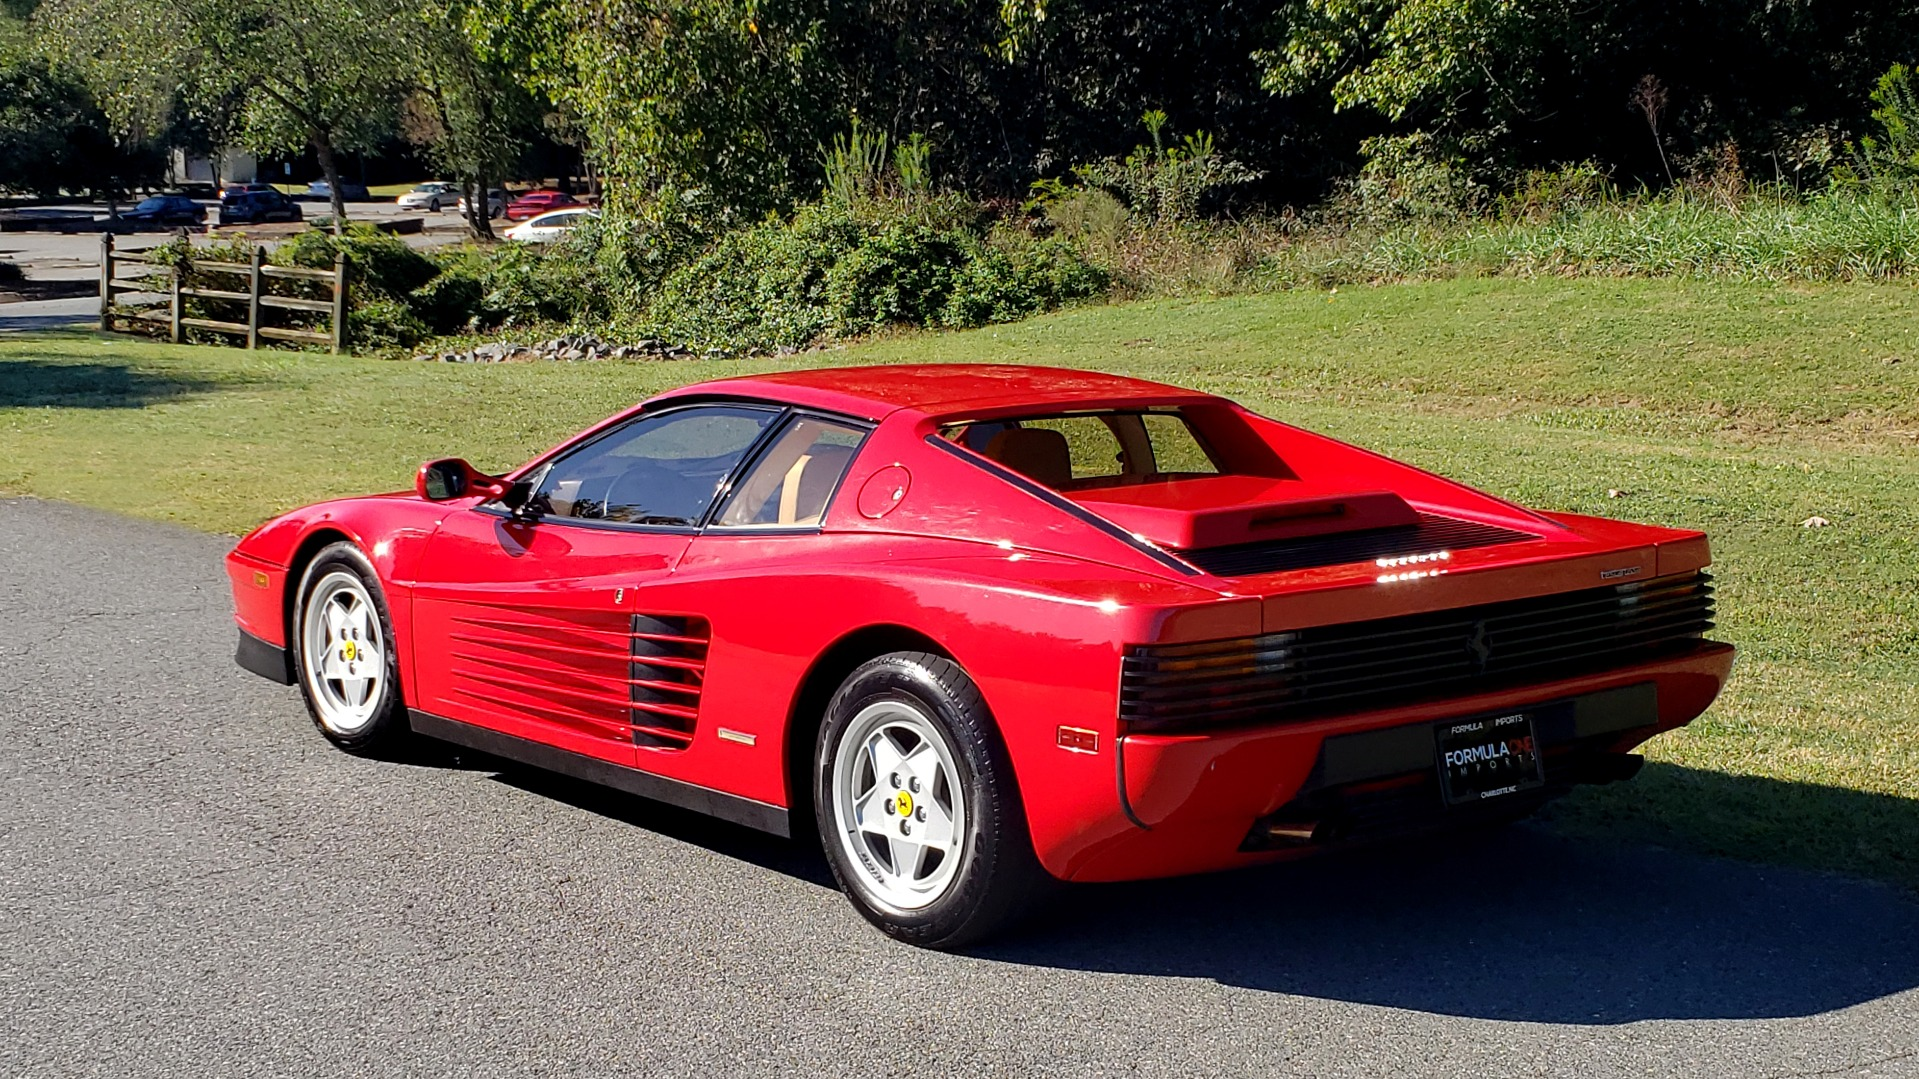 Used 1988 Ferrari TESTAROSSA COUPE / 4.9L FLAT-12 / 5-SPEED MANUAL / LOW MILES SUPER CLEAN for sale $128,999 at Formula Imports in Charlotte NC 28227 4